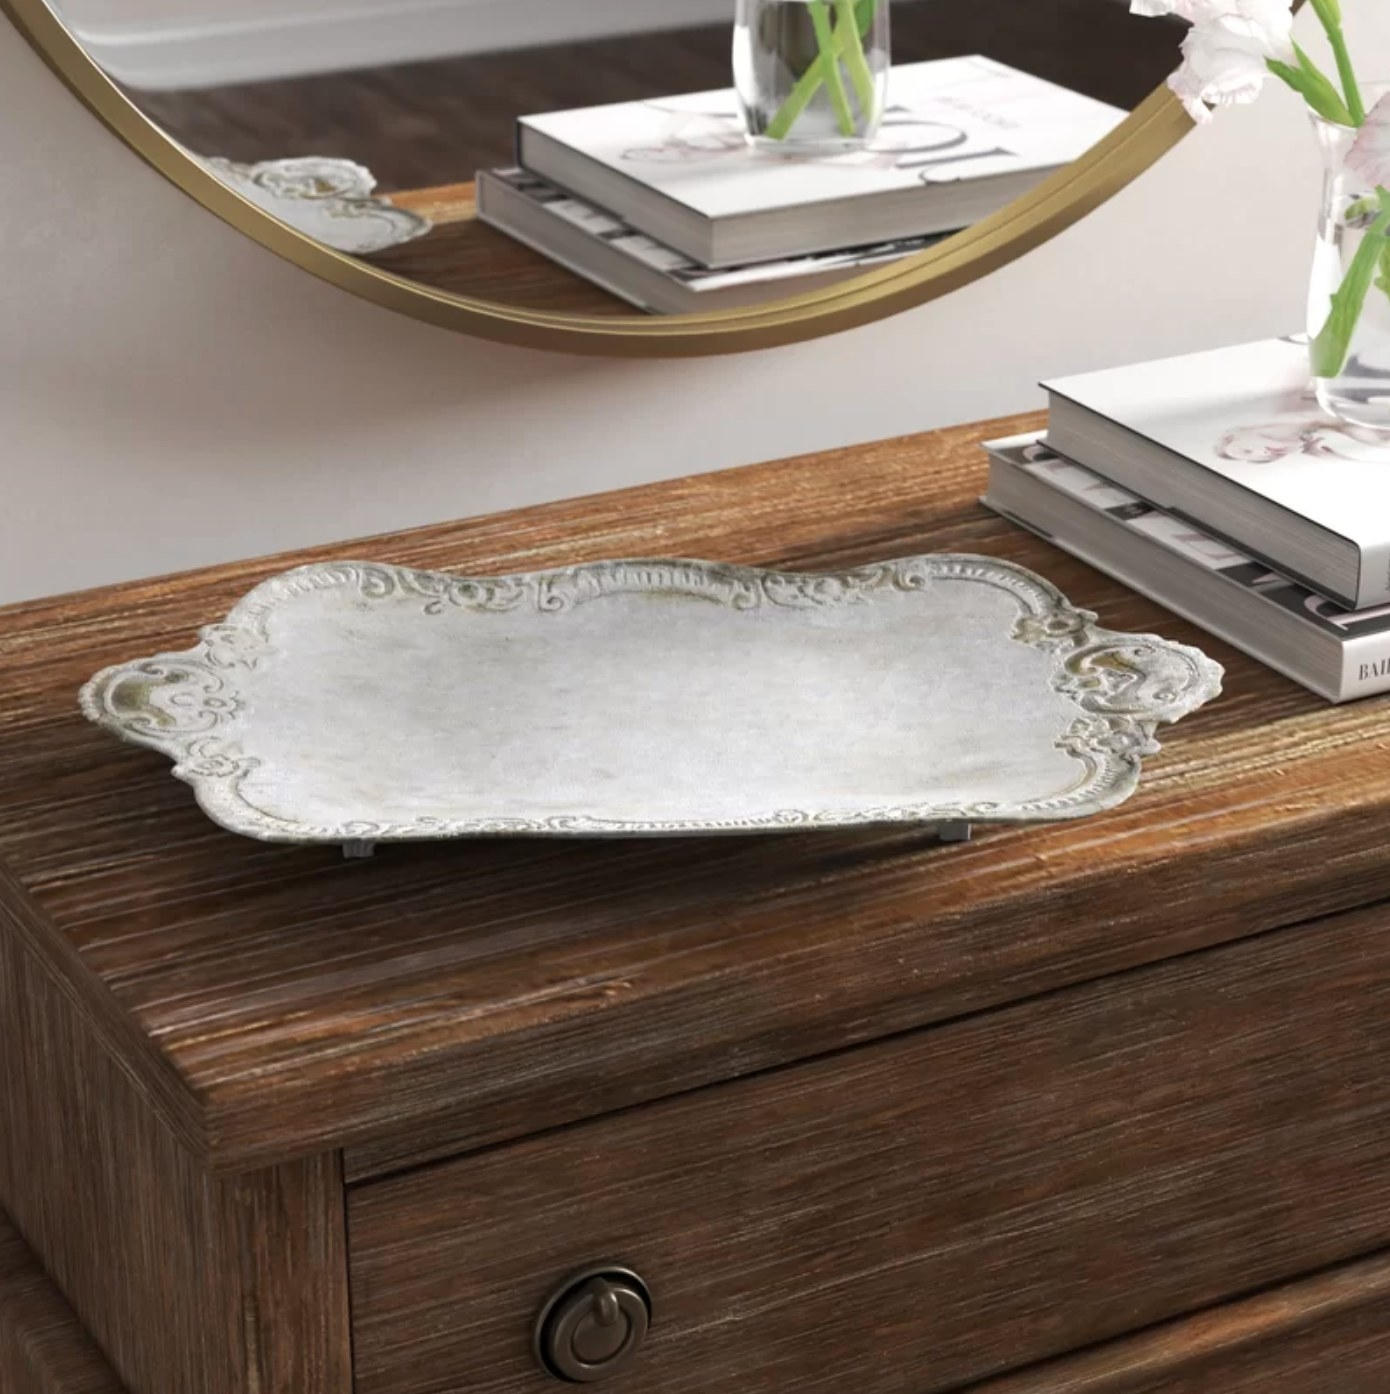 The accent tray in silver